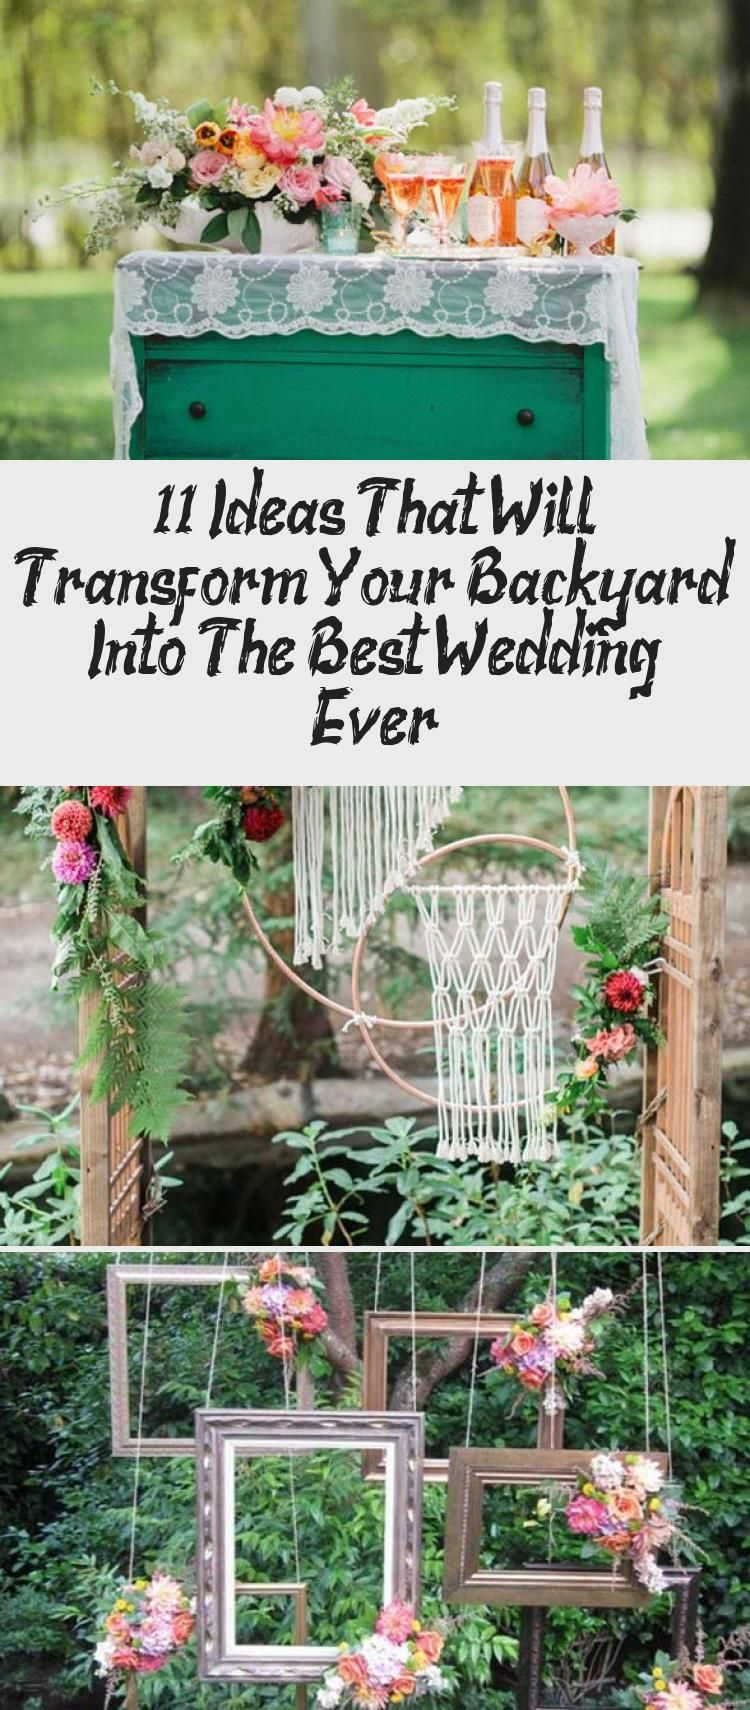 My Blog in 2020 Backyard activities, Fall garden wedding